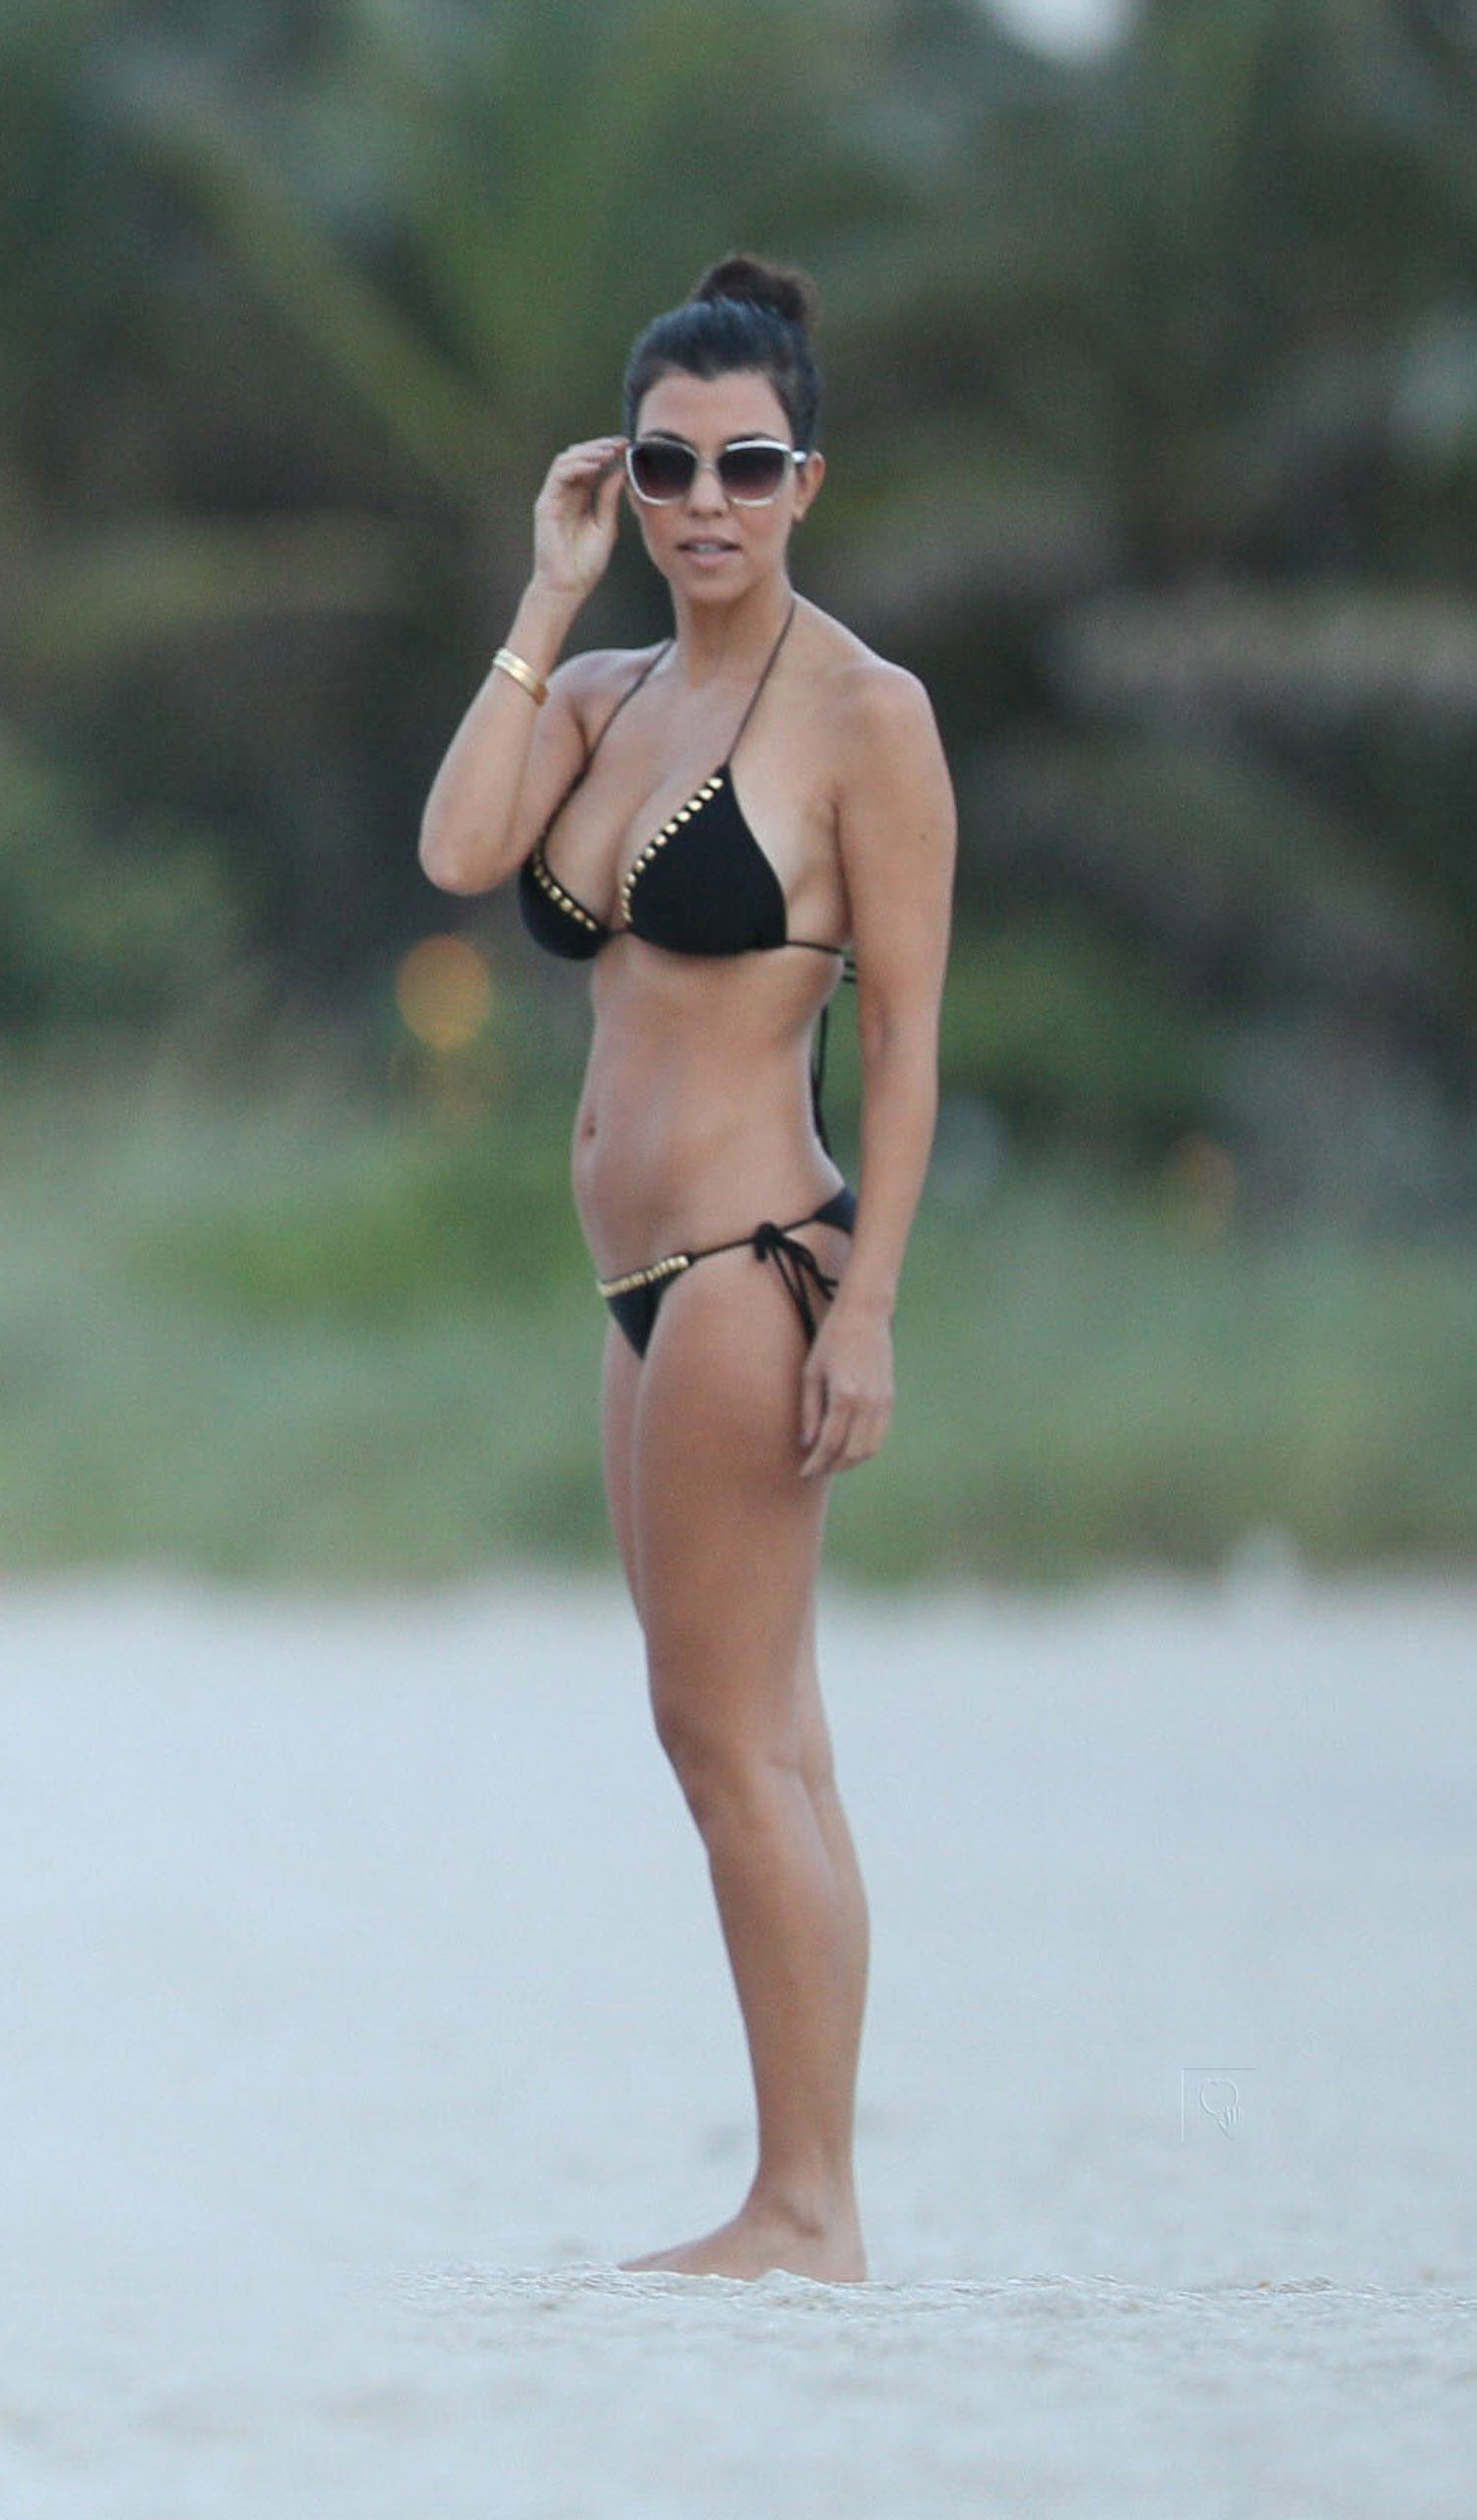 02001_Kourtney_Kardashian_at_Miami_Beach1_122_516lo.jpg